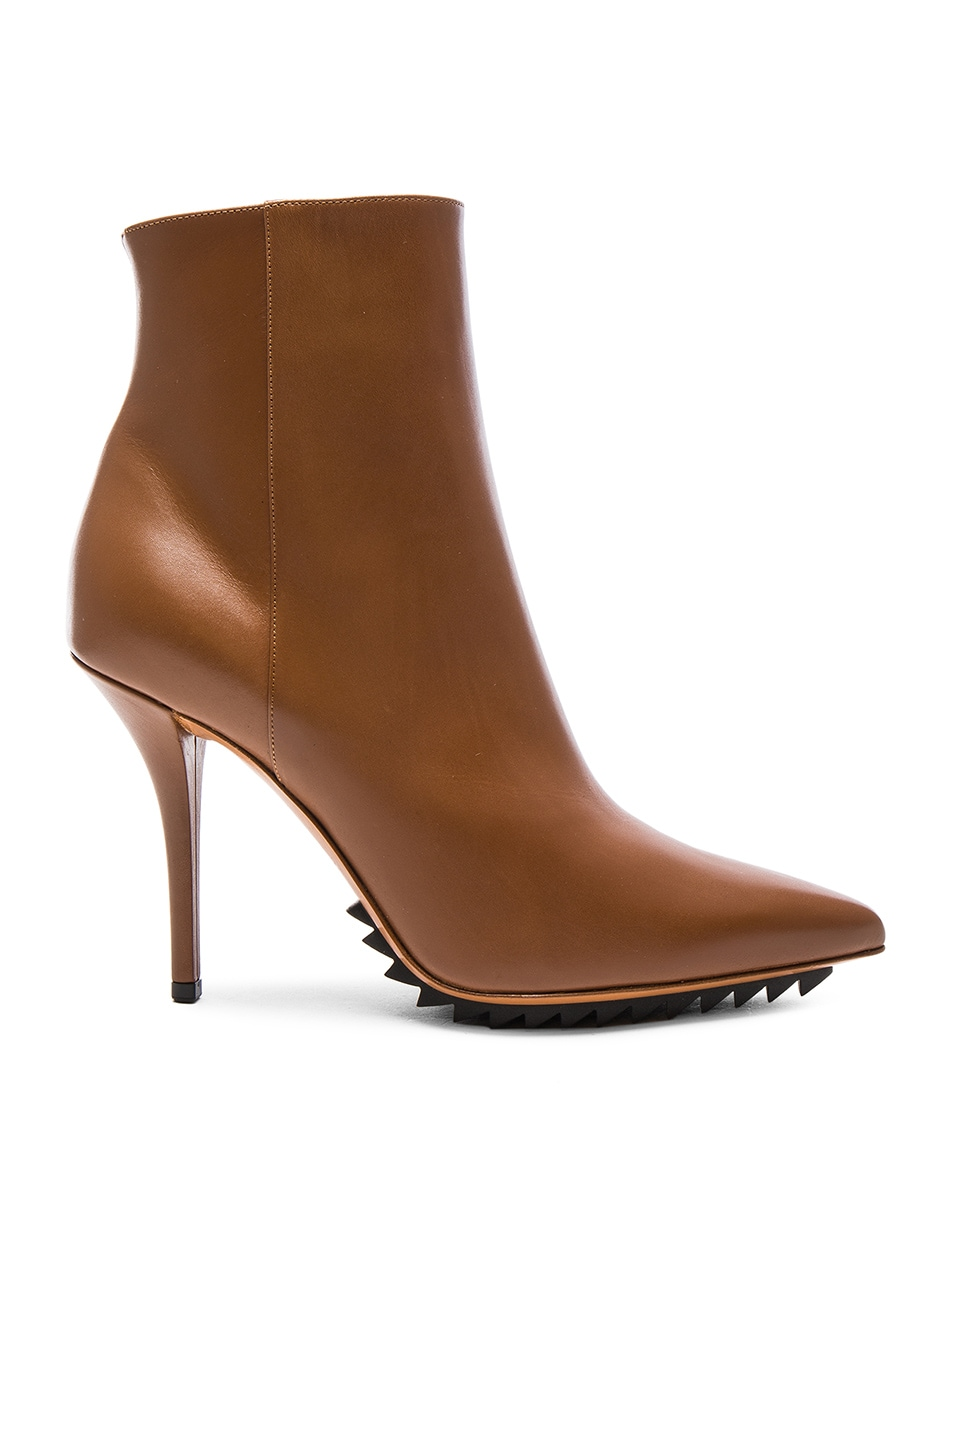 Image 1 of Givenchy Iron Ankle Leather Booties in Camel